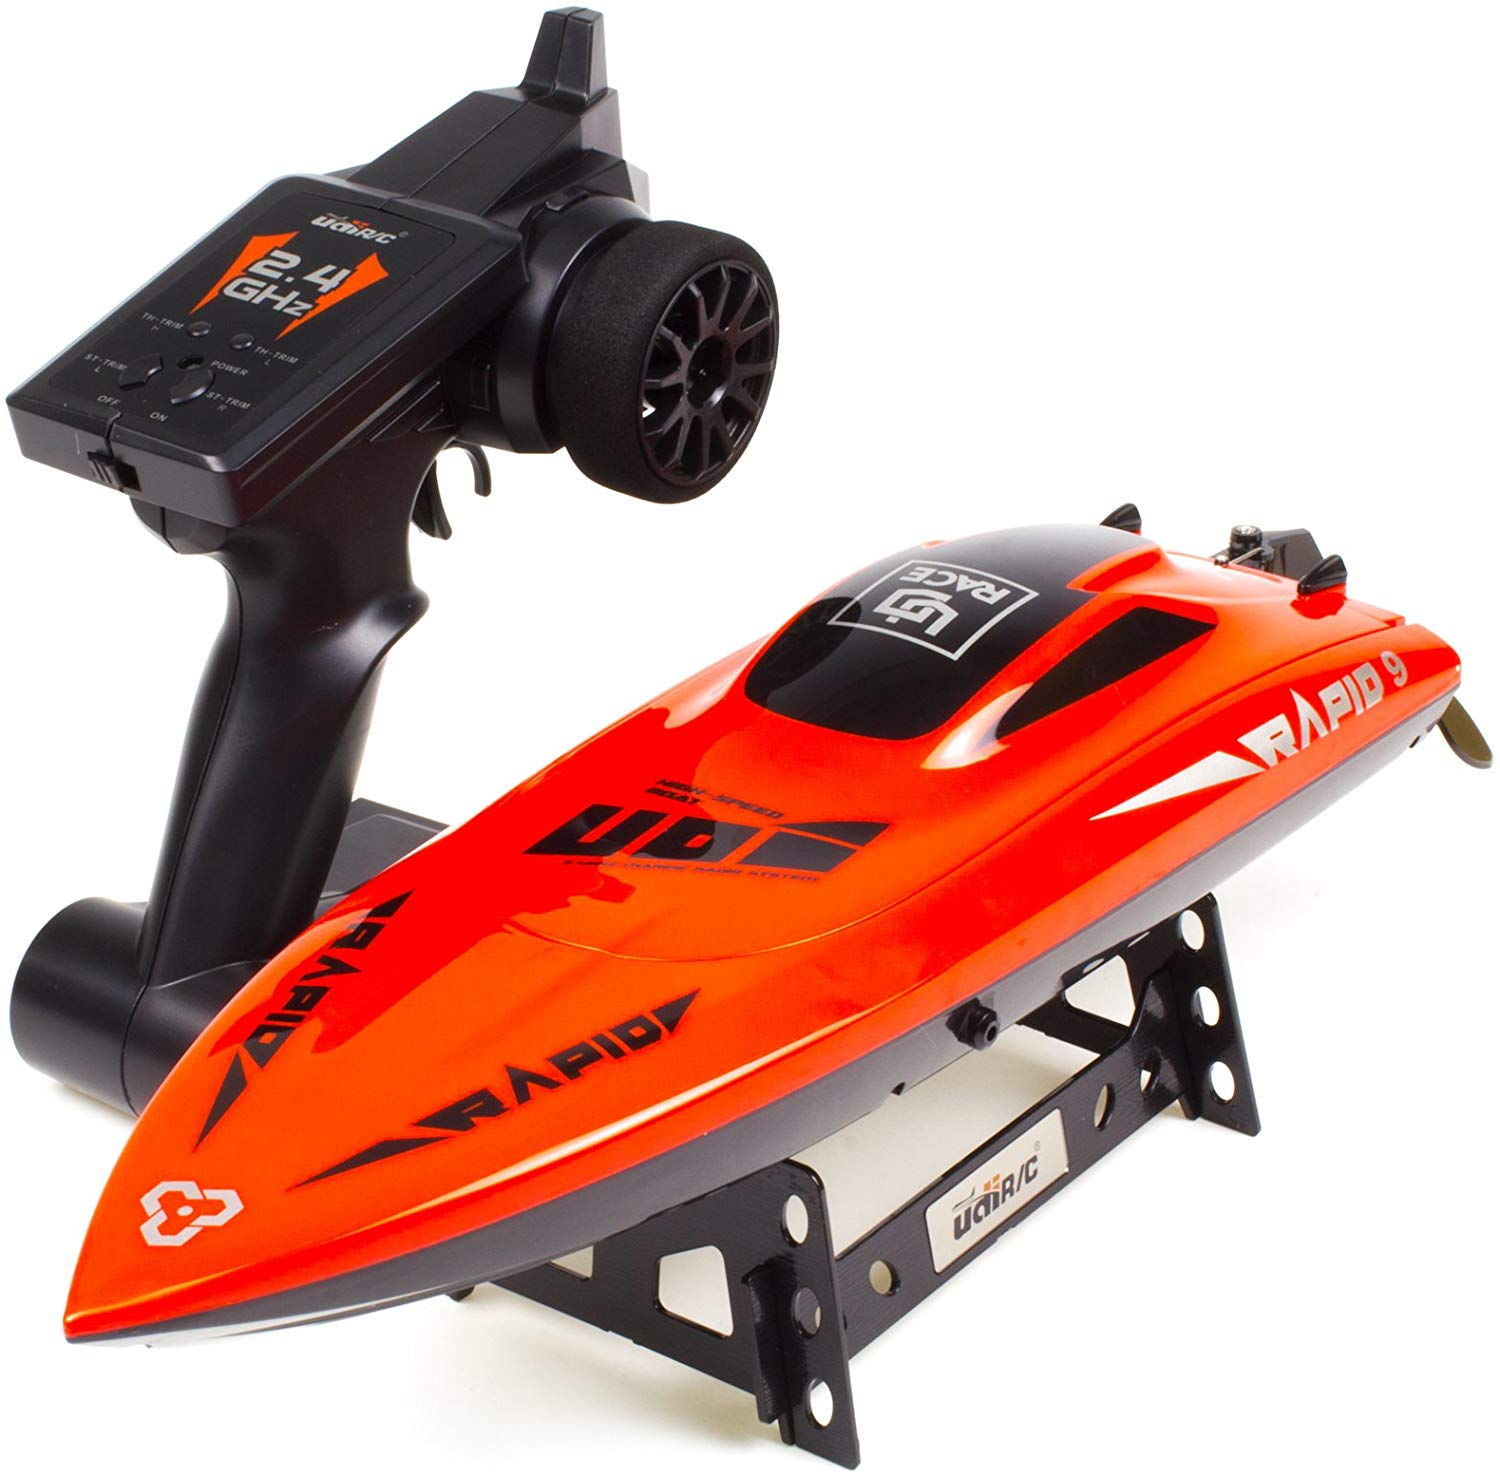 Cheerwing UDI RC Racing Boat for Adults